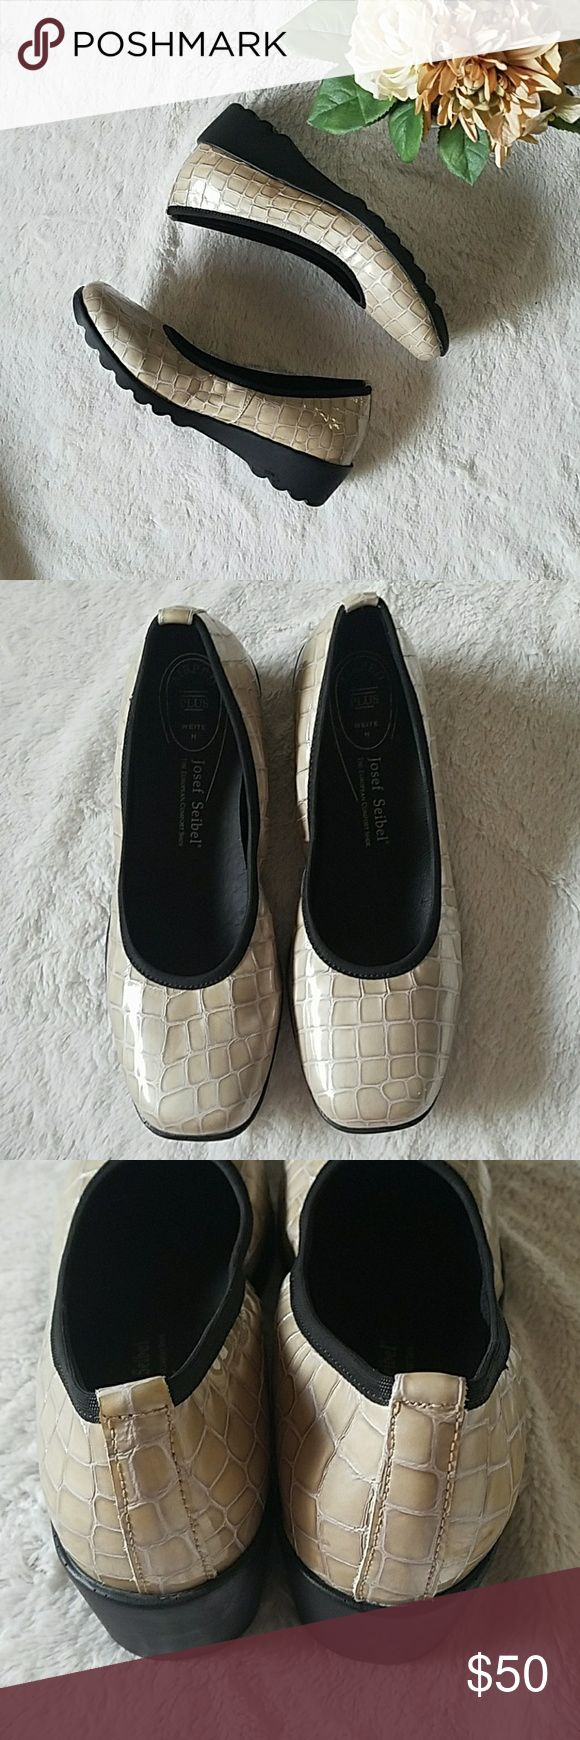 Josef Seibel patent alligator print flats These are in excellent used condition with little to no signs of wear. Only worn a handful of times! Patent leather  Size 8 (38) Josef Seibel Shoes Flats & Loafers